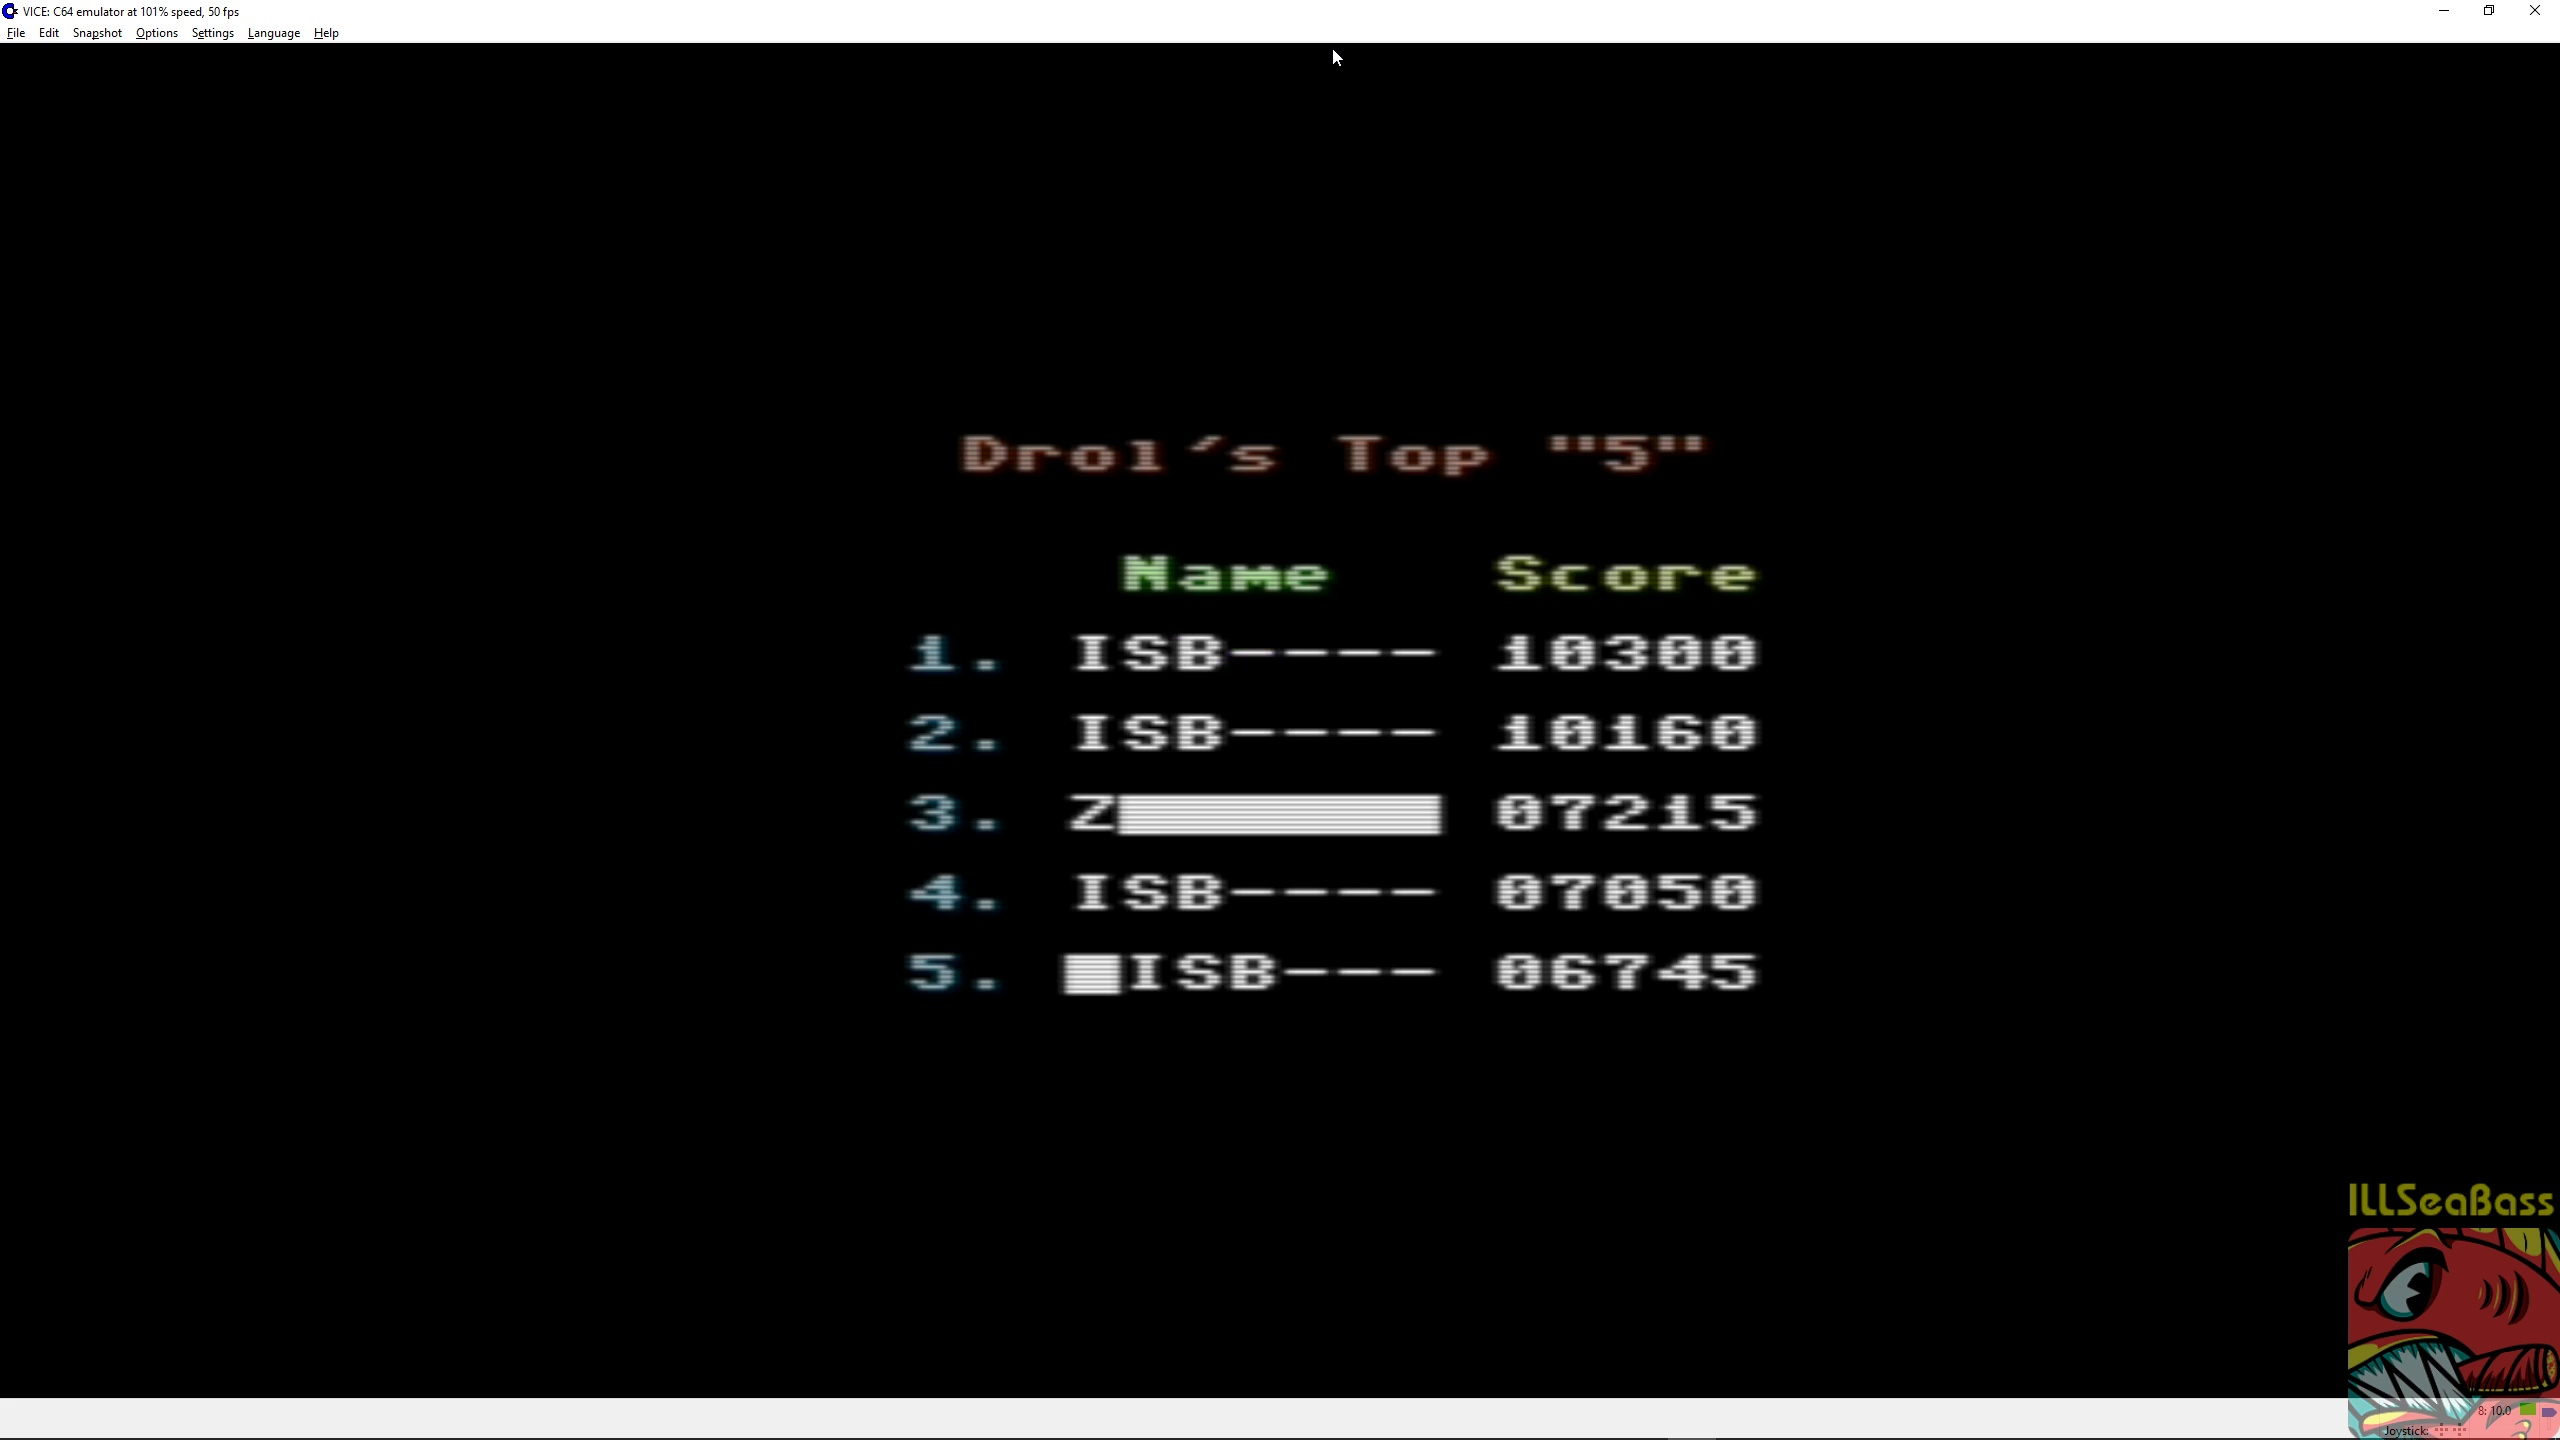 ILLSeaBass: Drol (Commodore 64 Emulated) 10,300 points on 2018-03-01 22:03:08